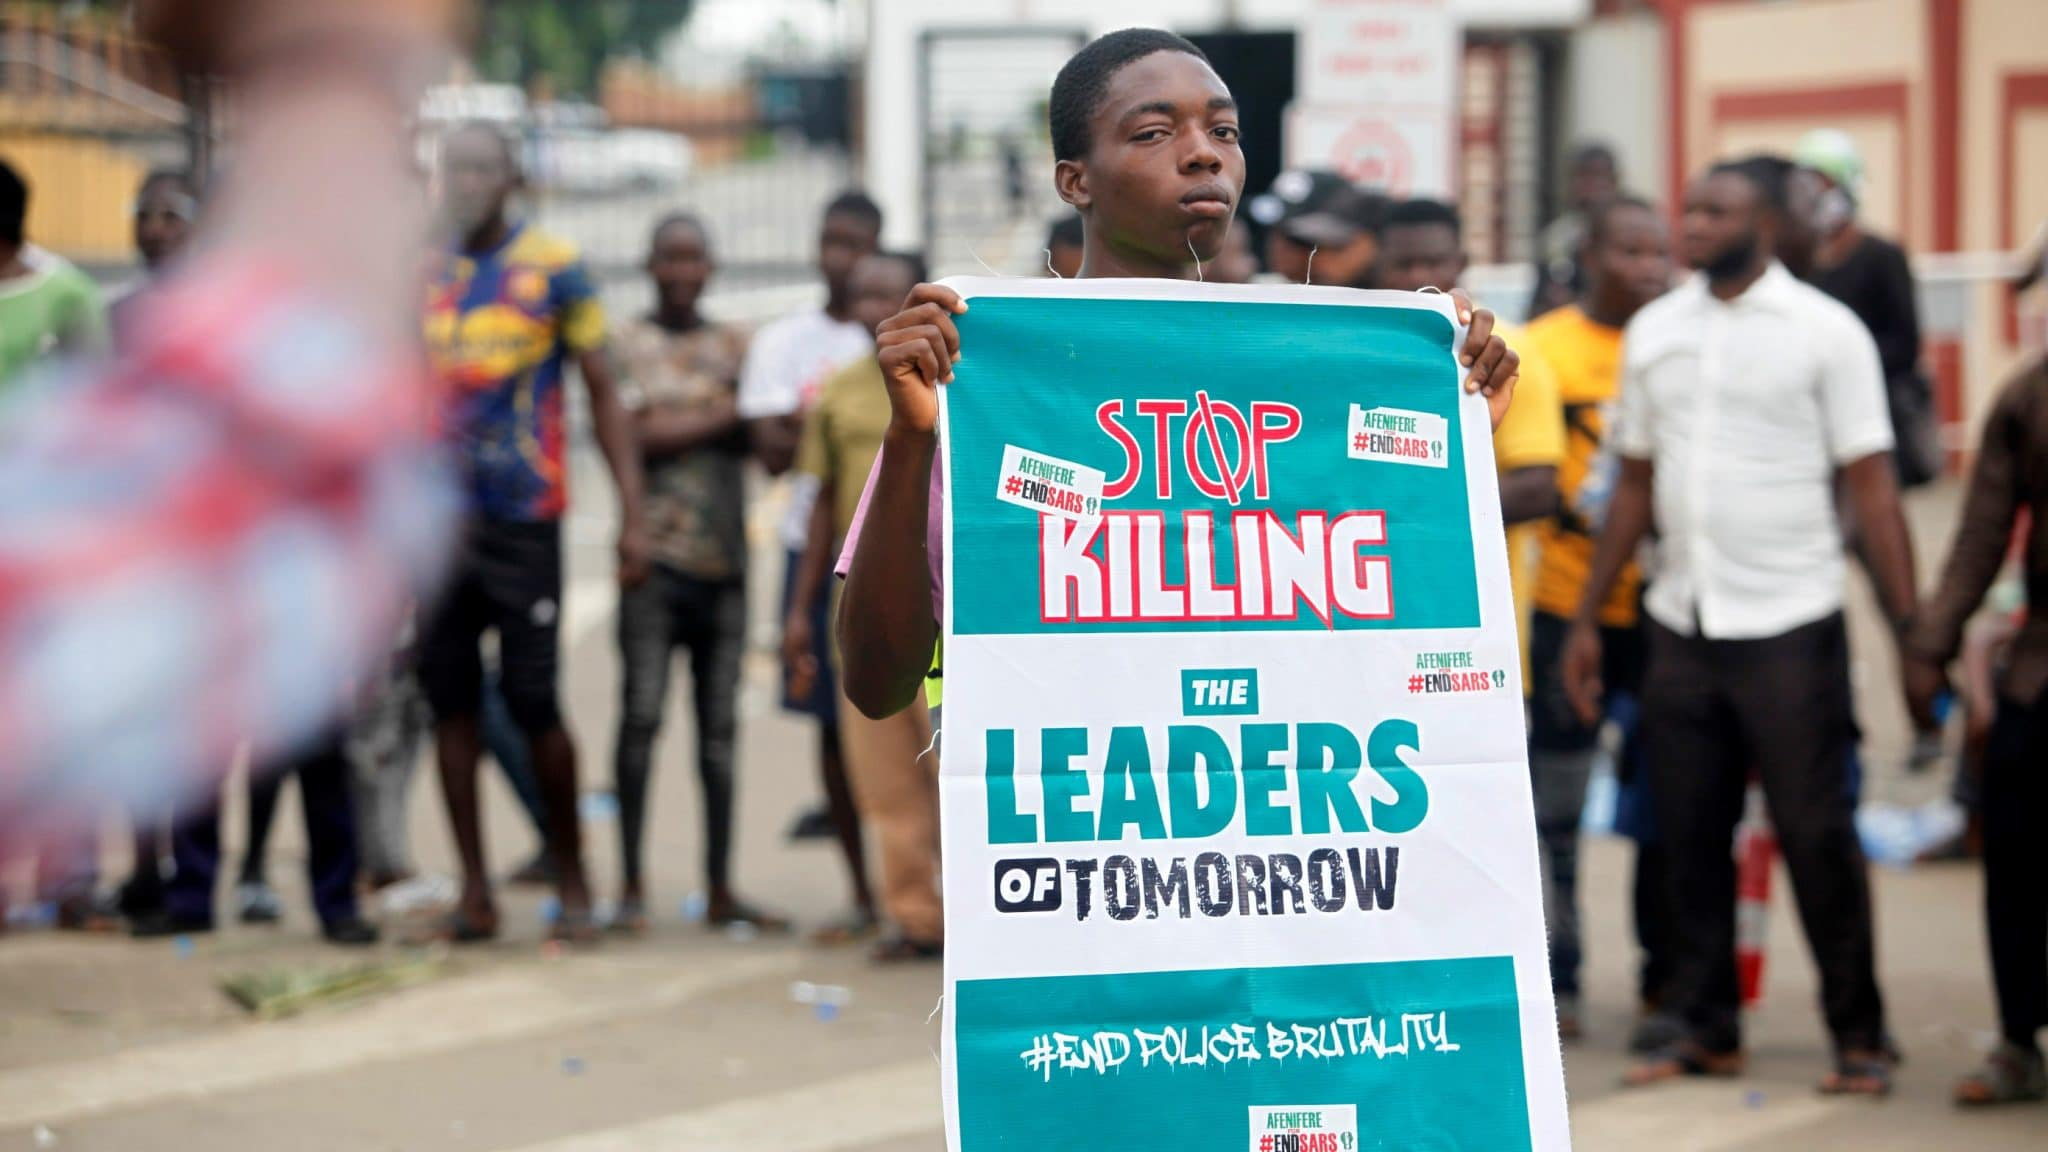 lagos protest 16 9 scaled.